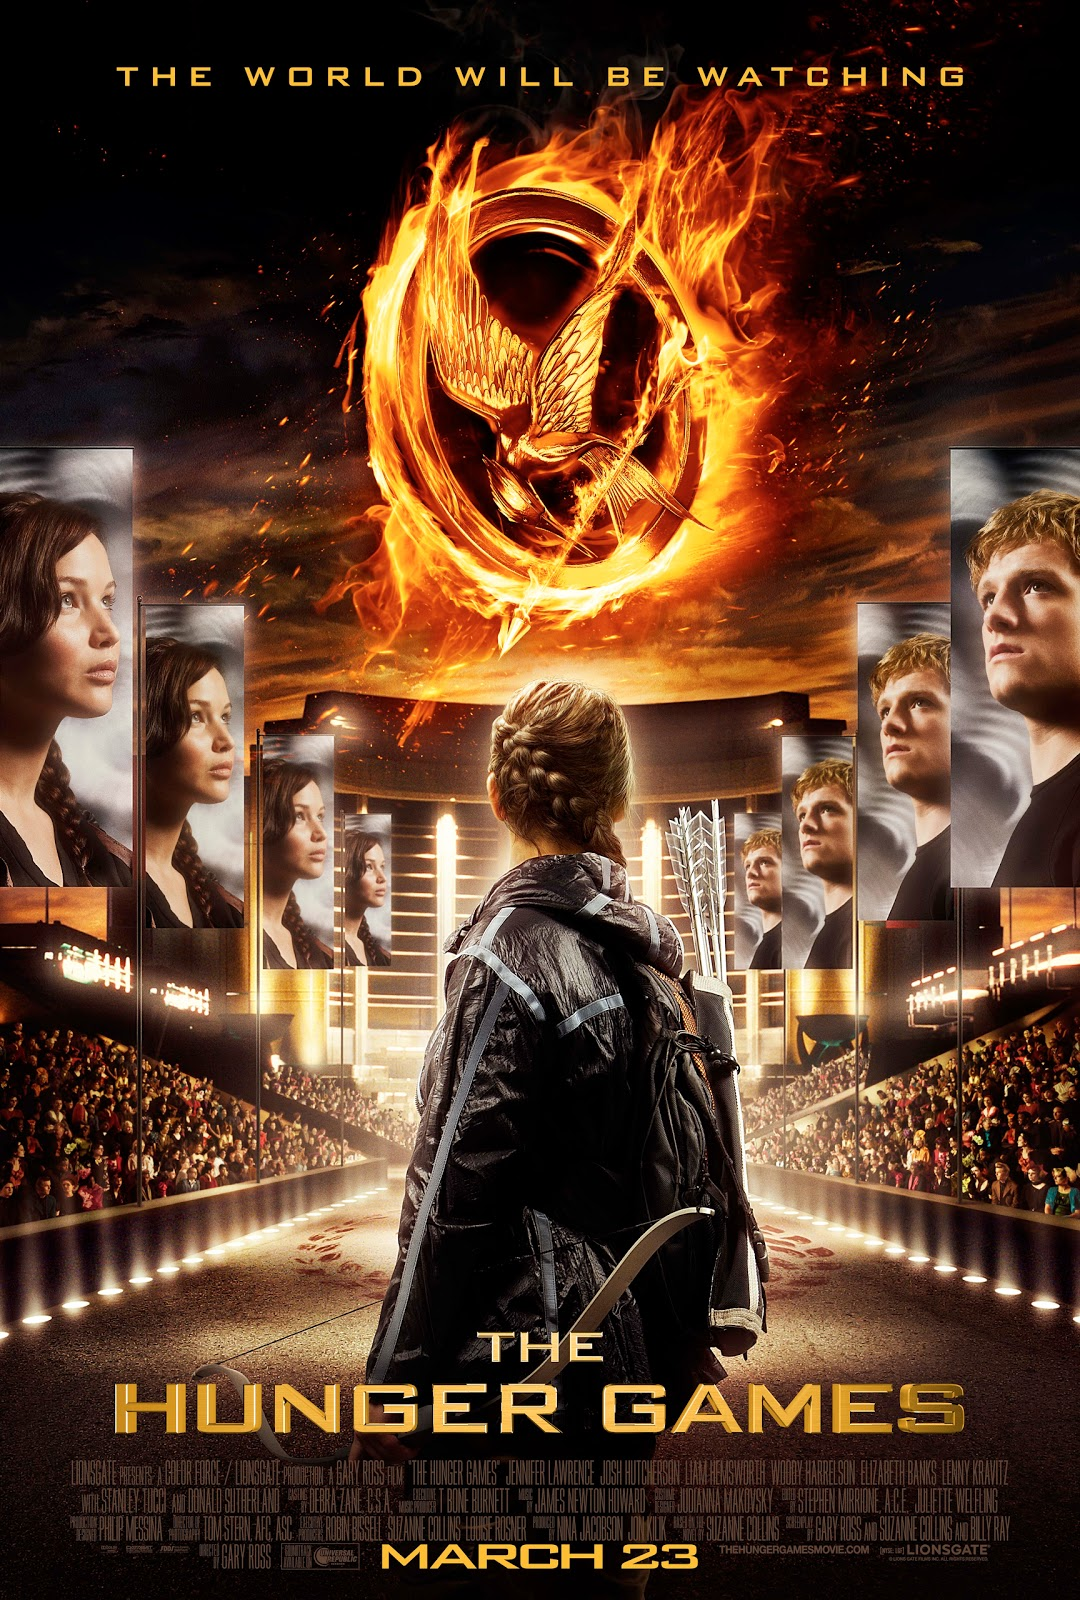 Film vs. Book: The Hunger Games: Book vs Film